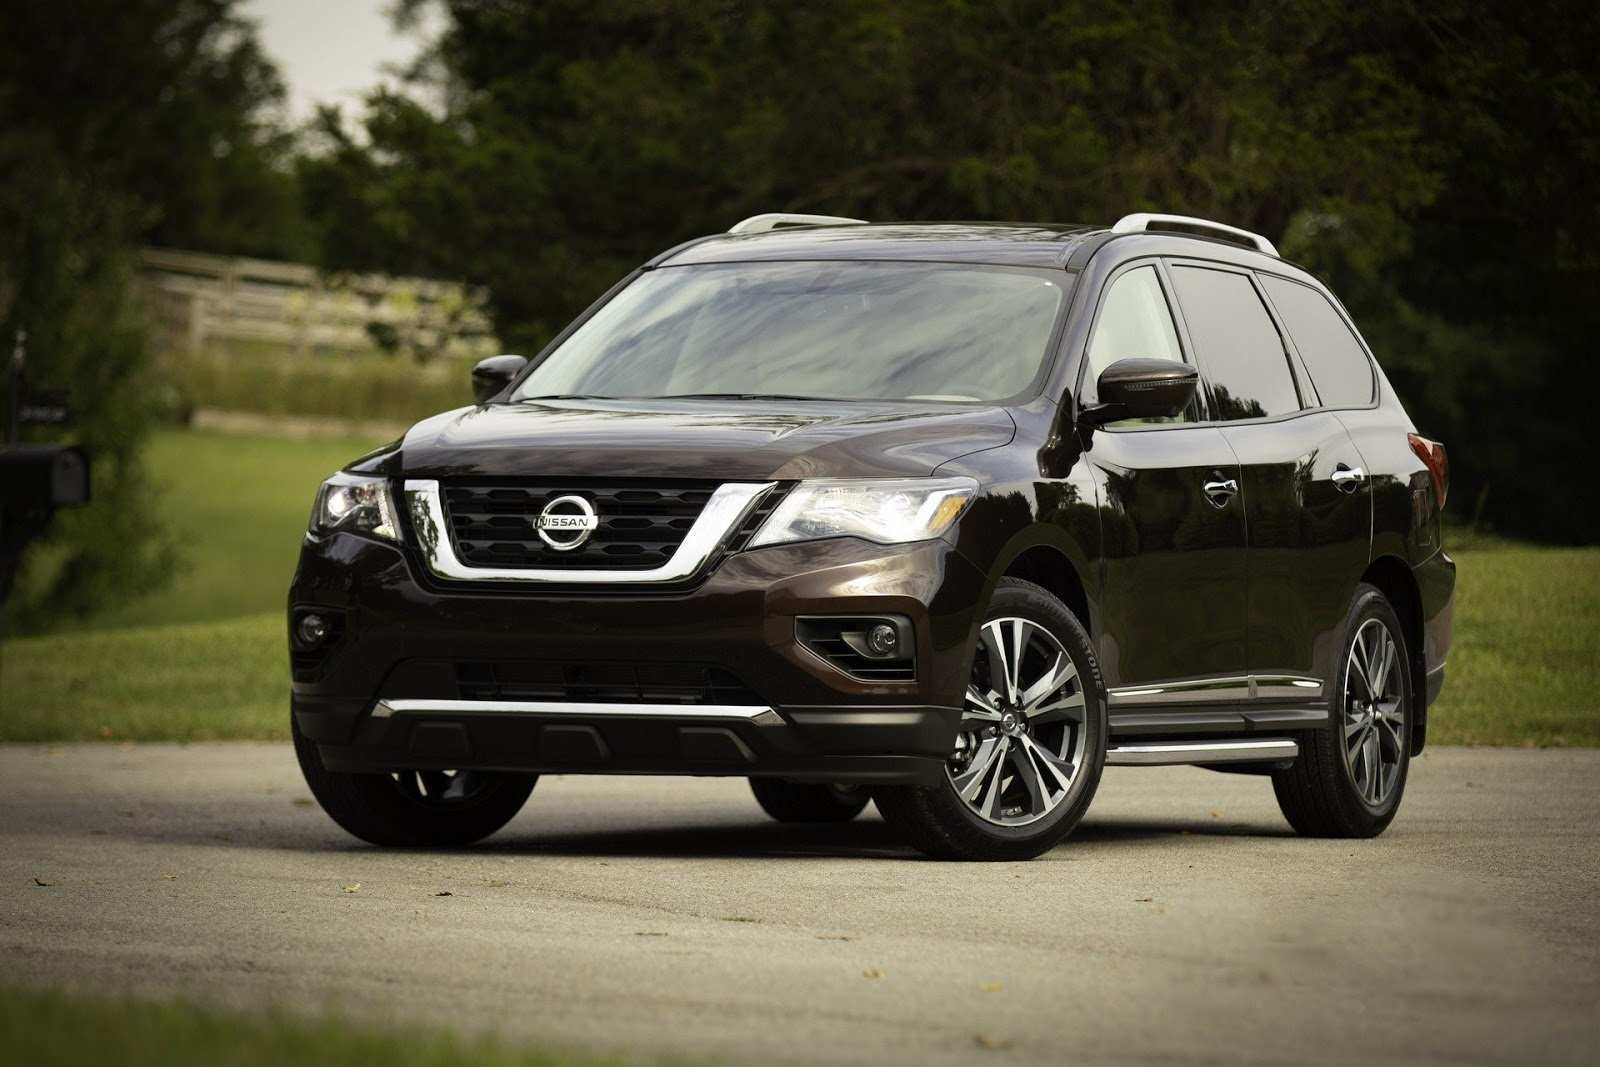 43 The Best 2019 Nissan Pathfinder Spy Shots Release